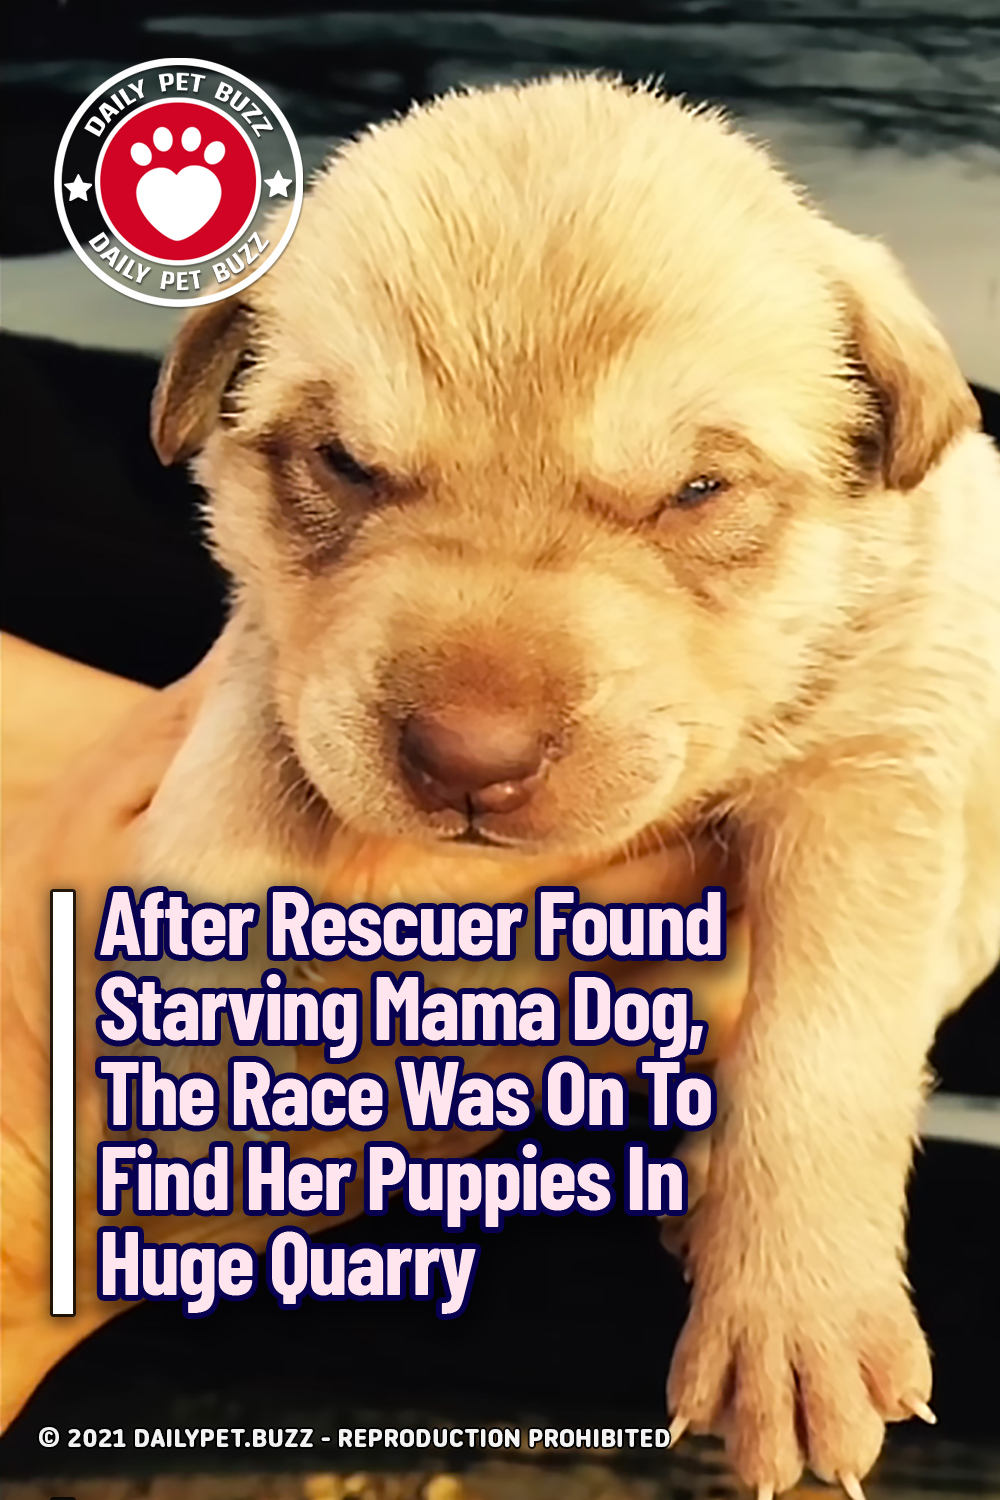 After Rescuer Found Starving Mama Dog, The Race Was On To Find Her Puppies In Huge Quarry